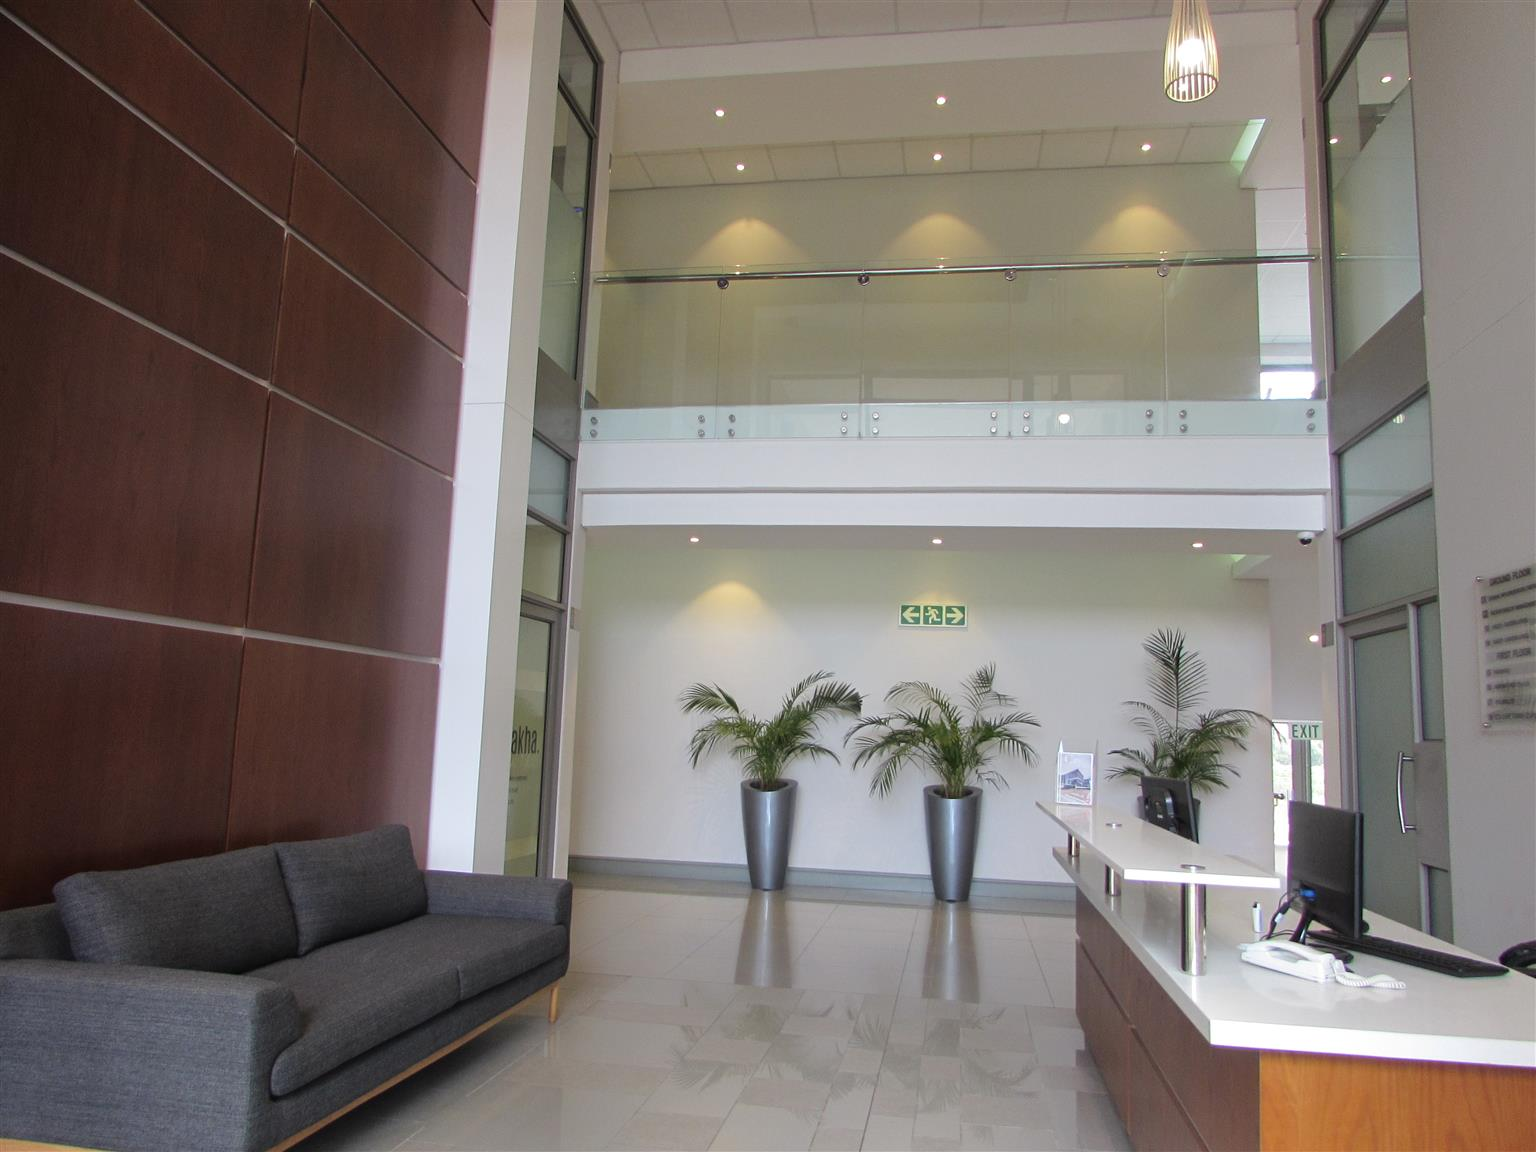 CENTURY CITY: 217m2 Office To Let